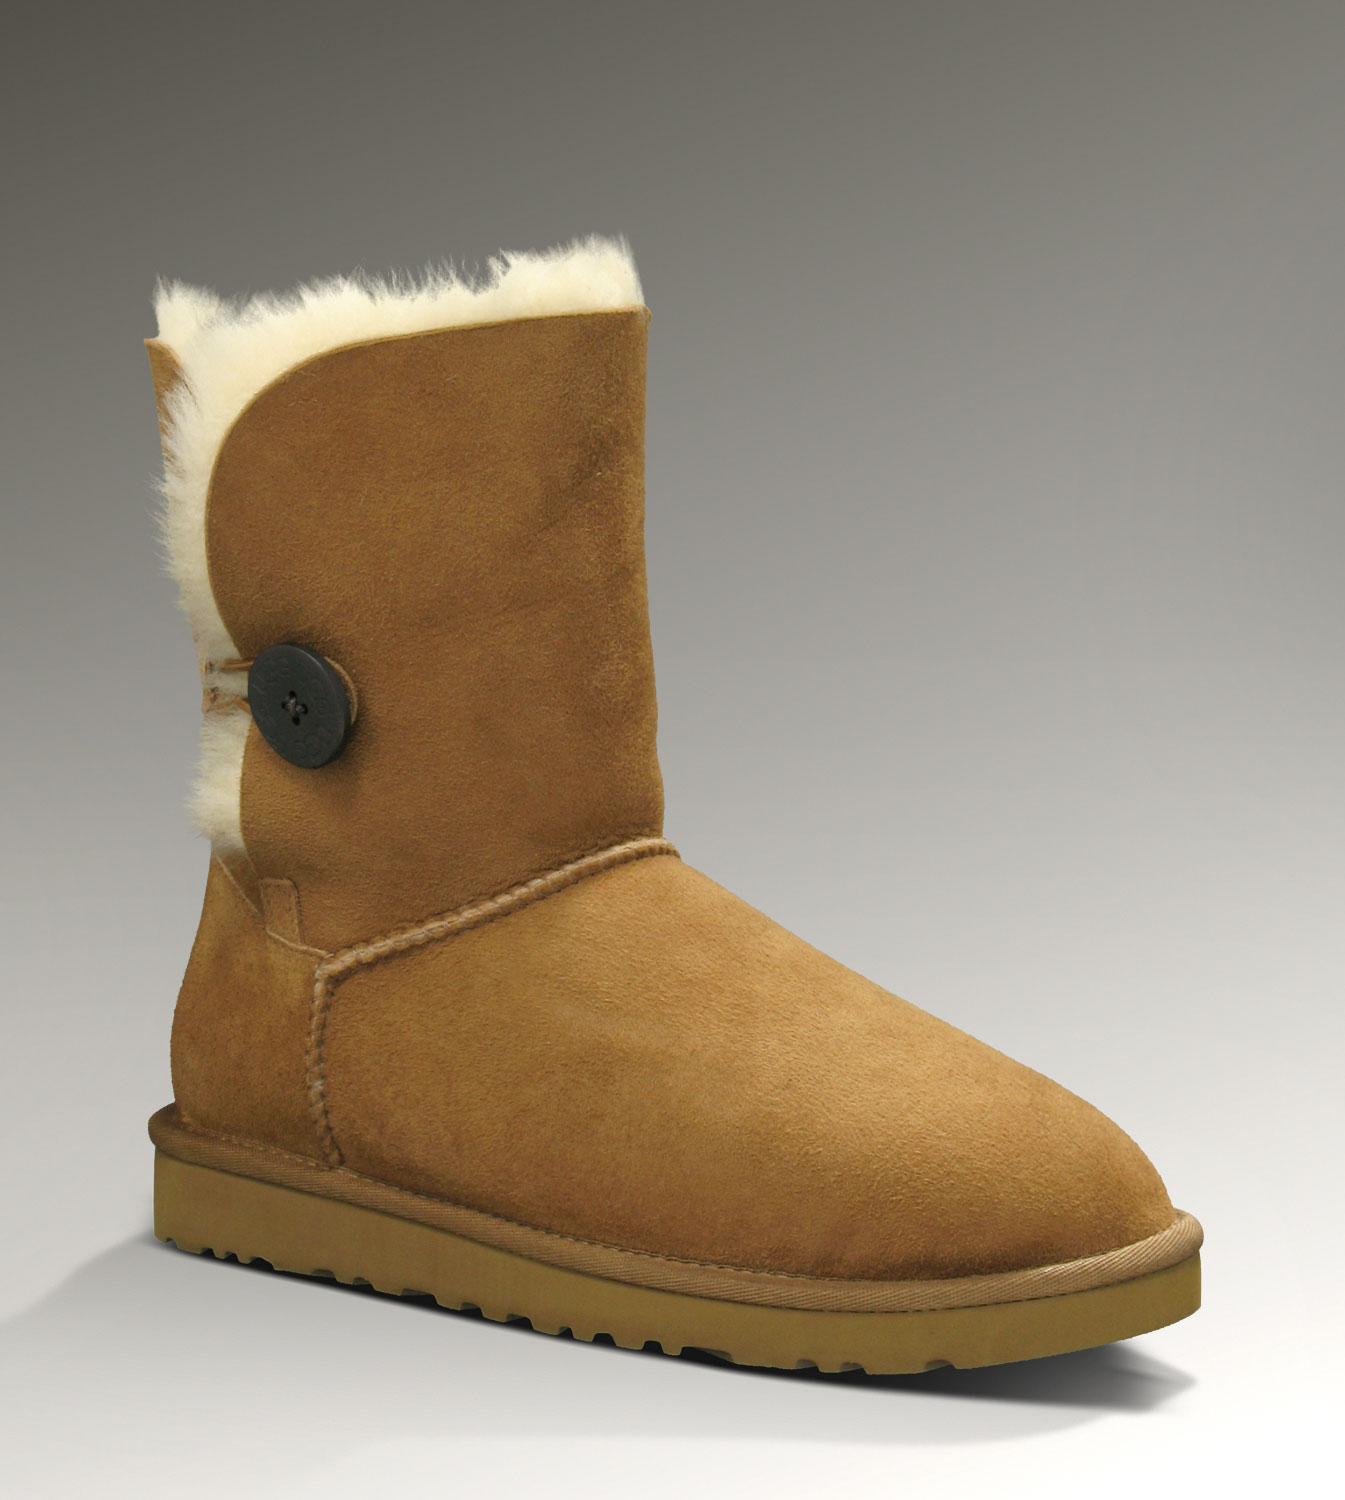 UGG Bailey Button 5803 Chestnut Boots